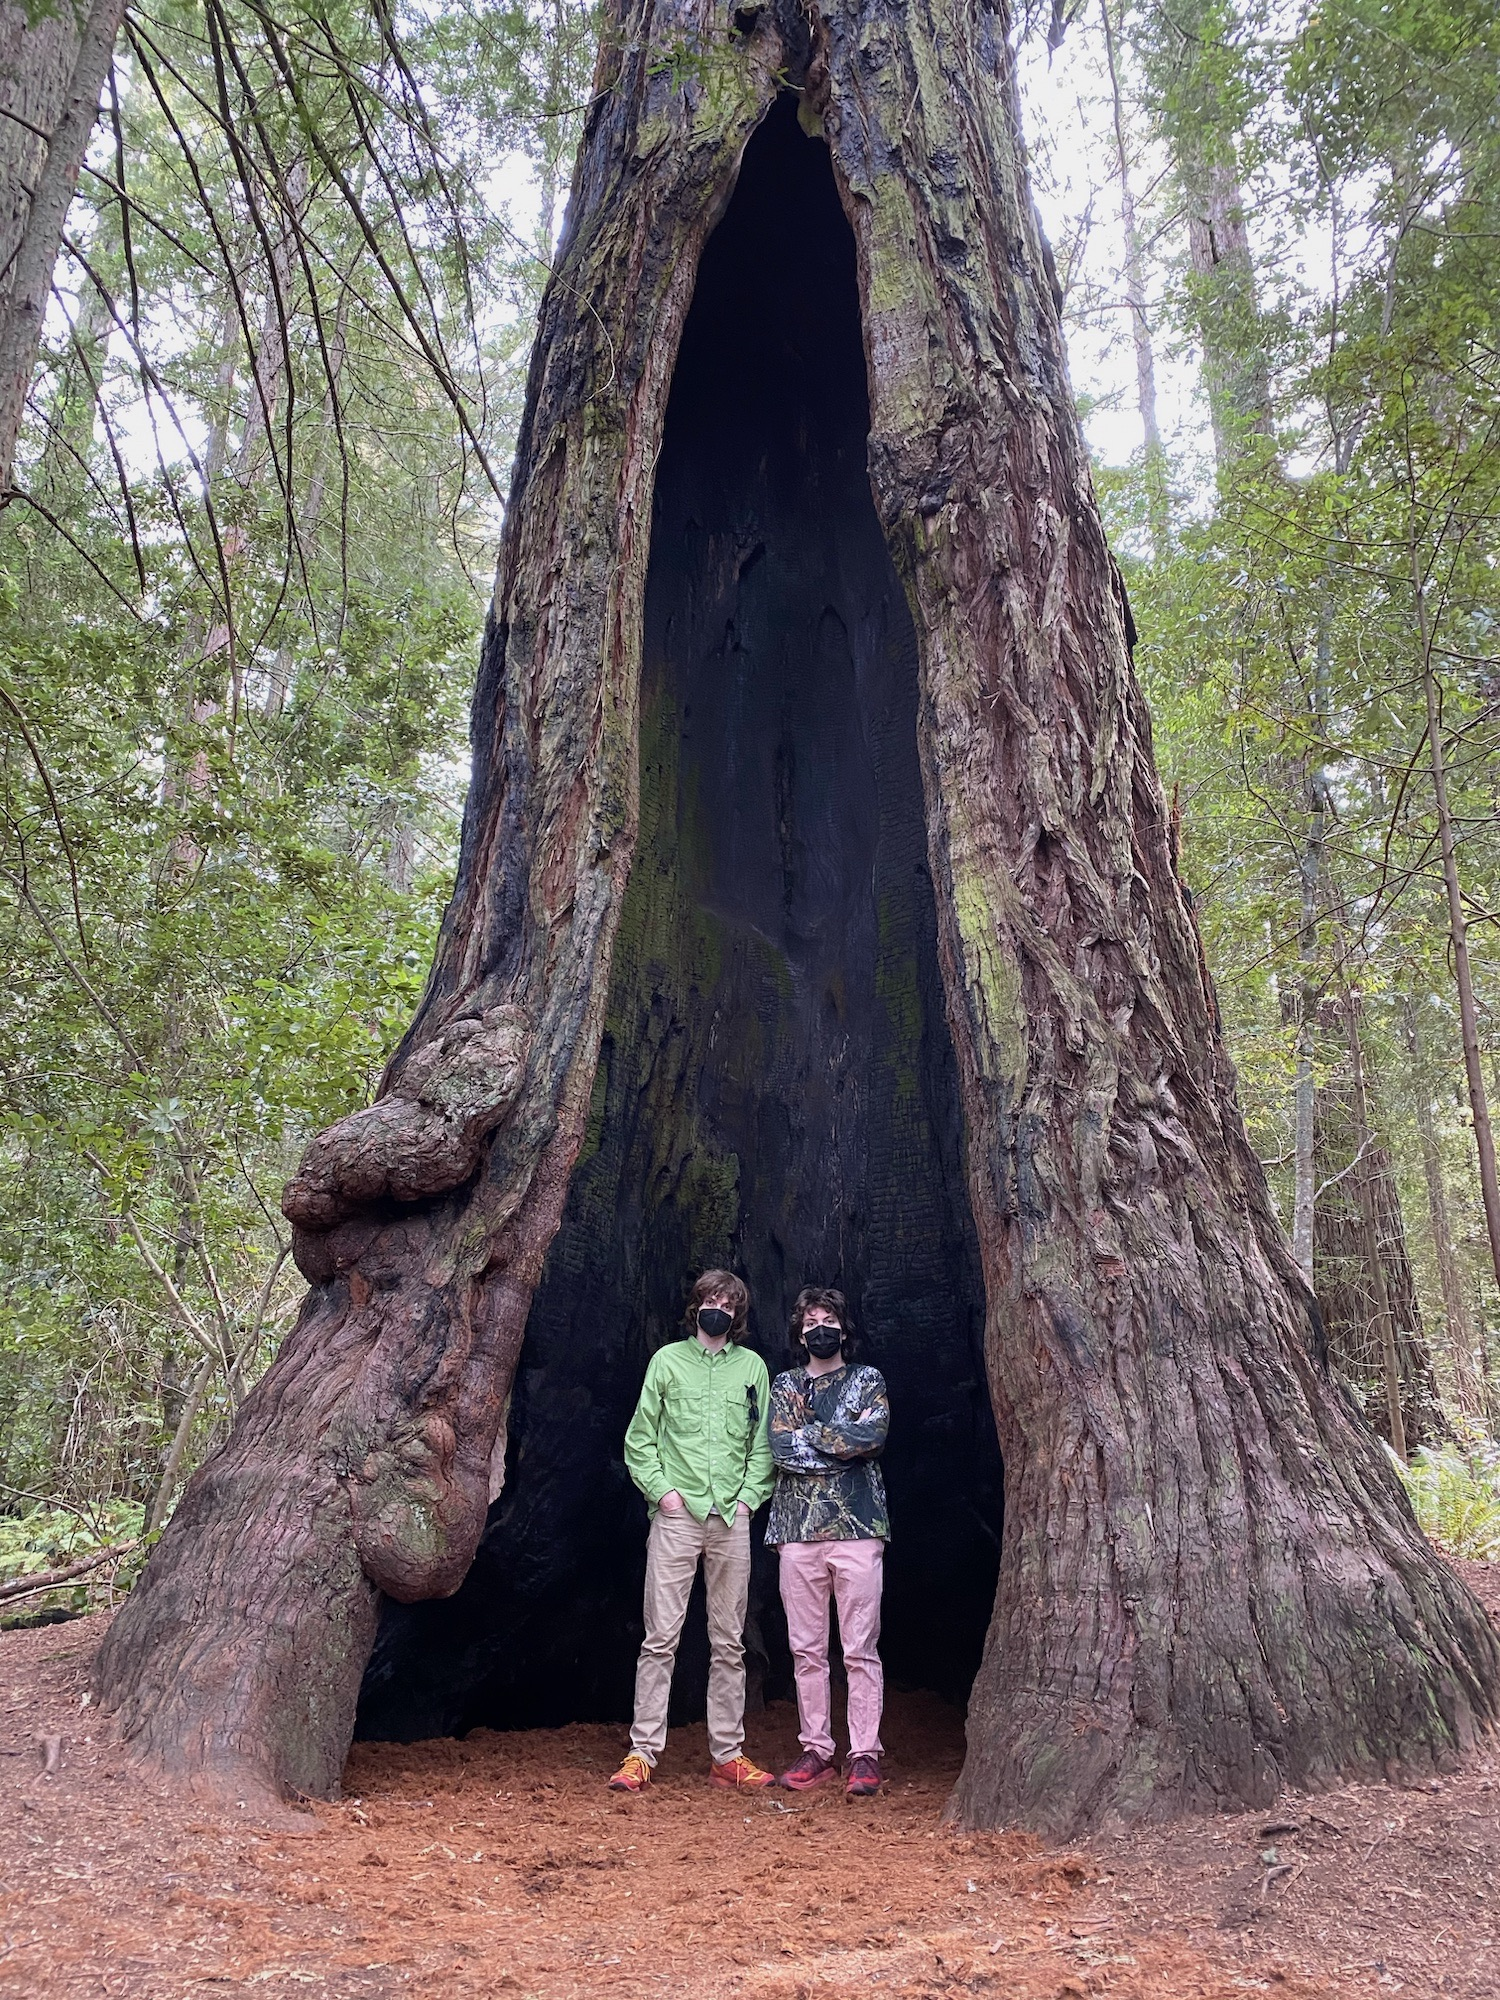 Sammy and me standing inside of a hollow redwood tree.